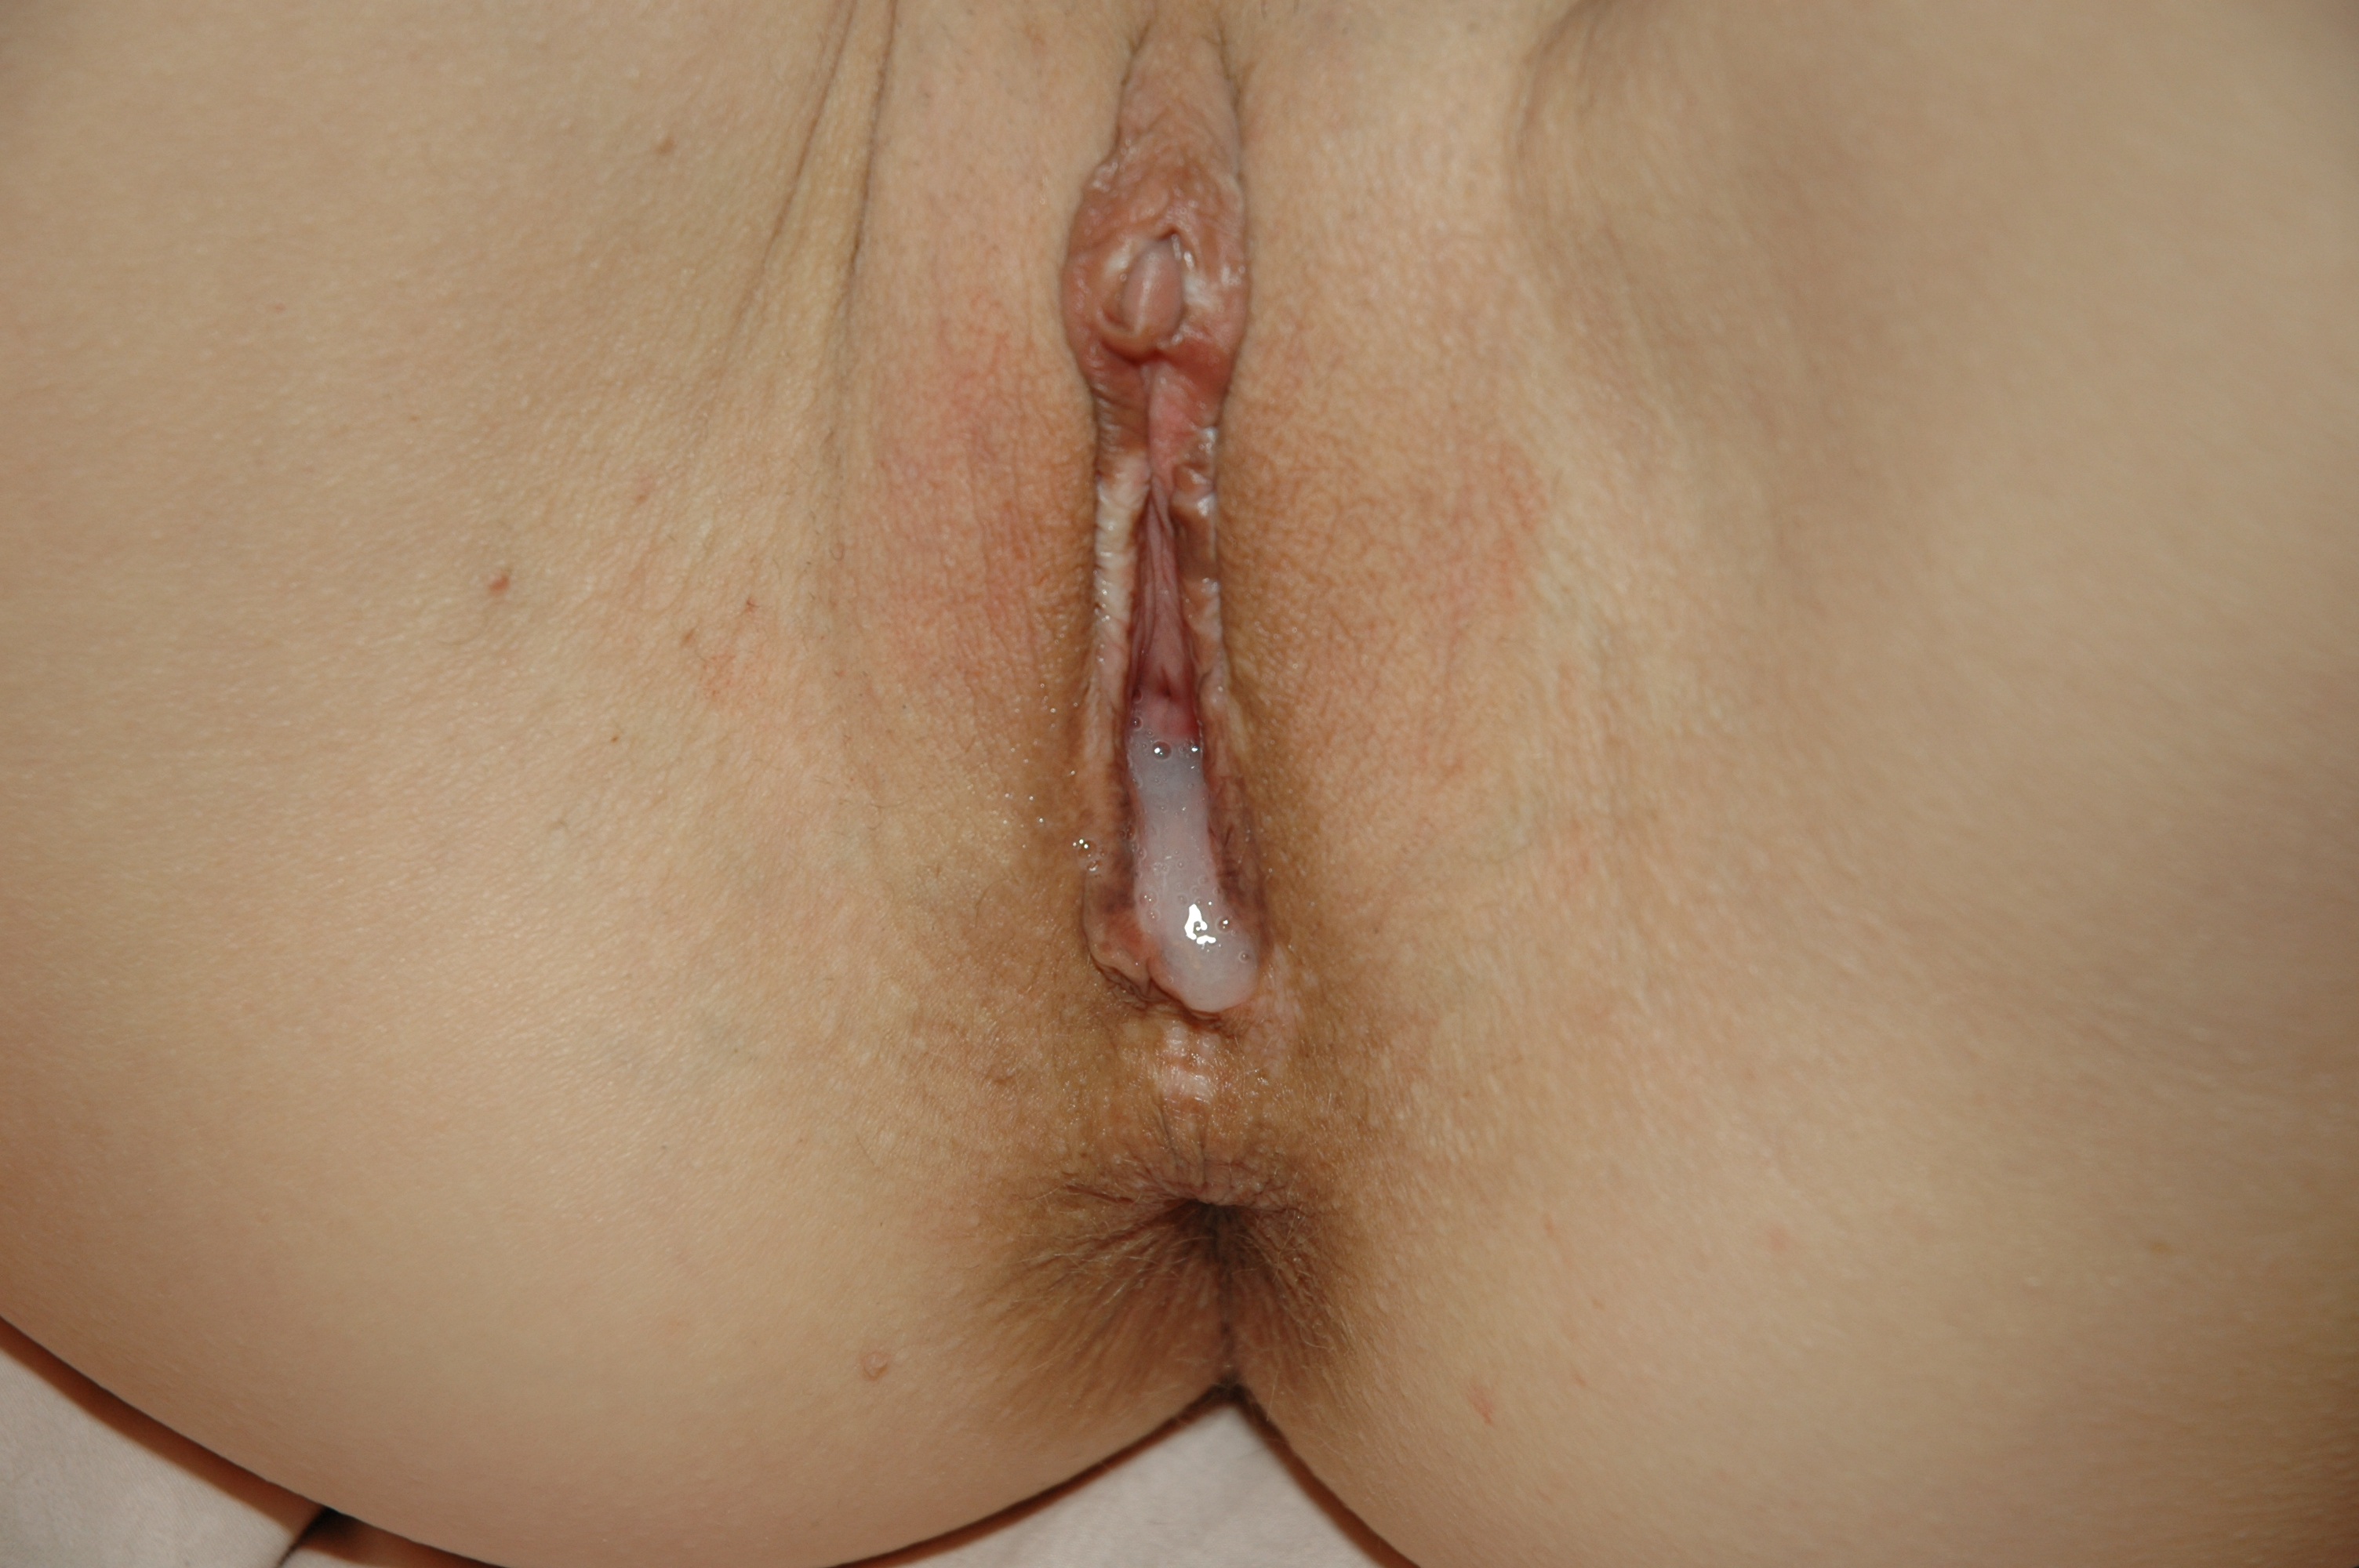 orale creampie sesso video